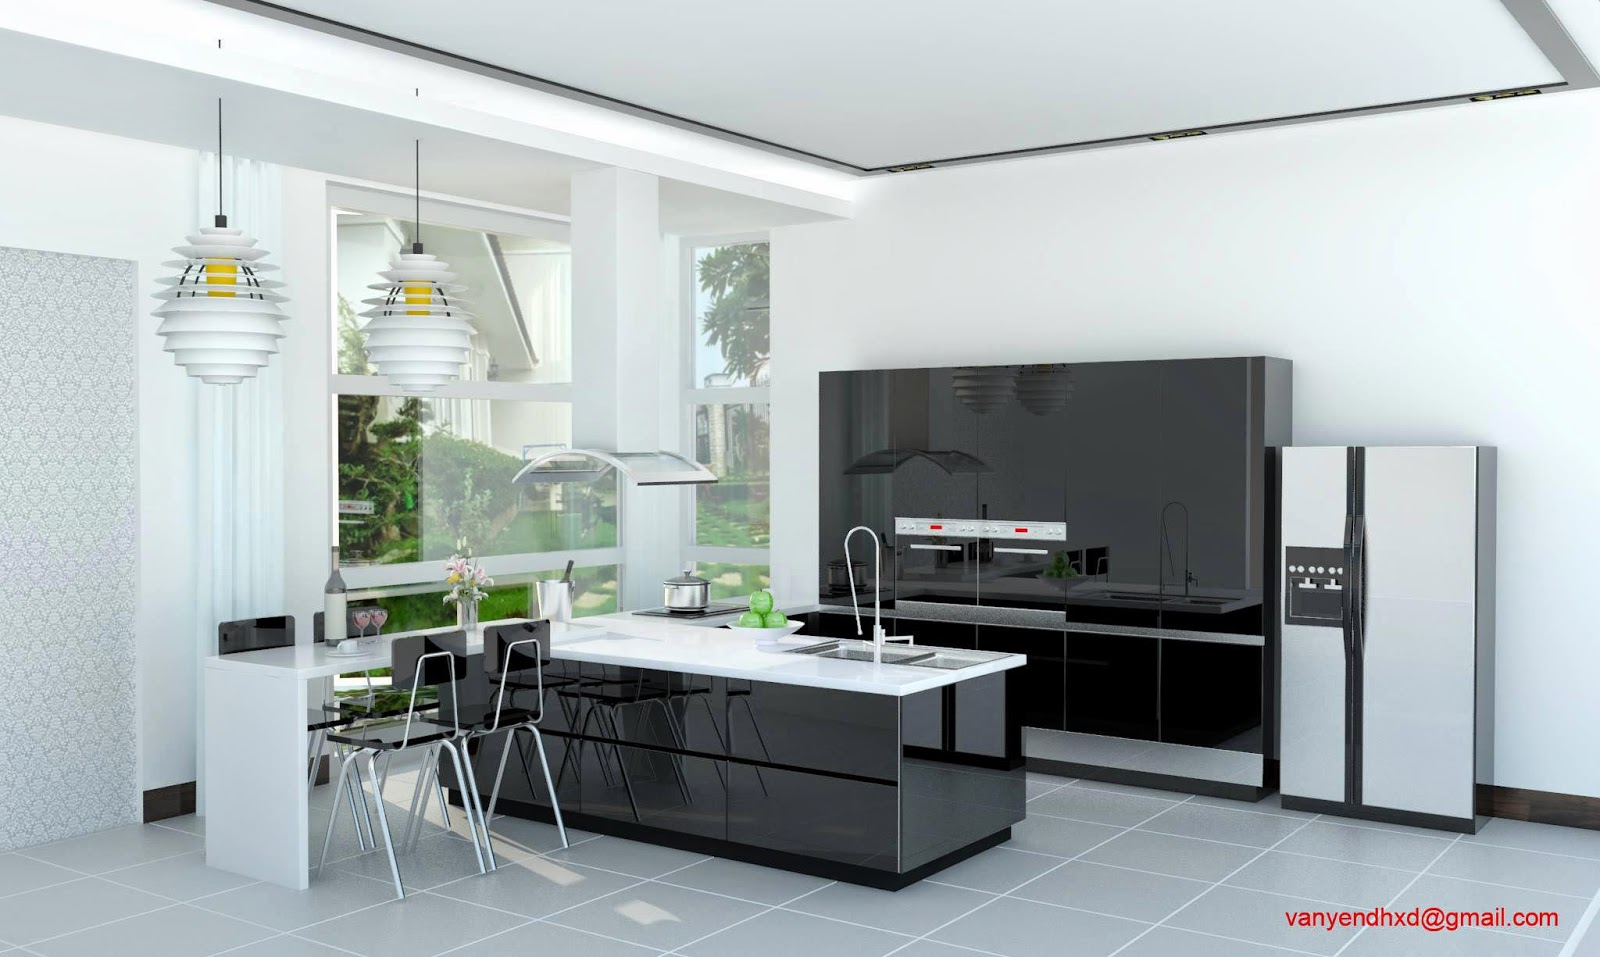 Kitchen Design 3d Model Emiliesbeauty Com